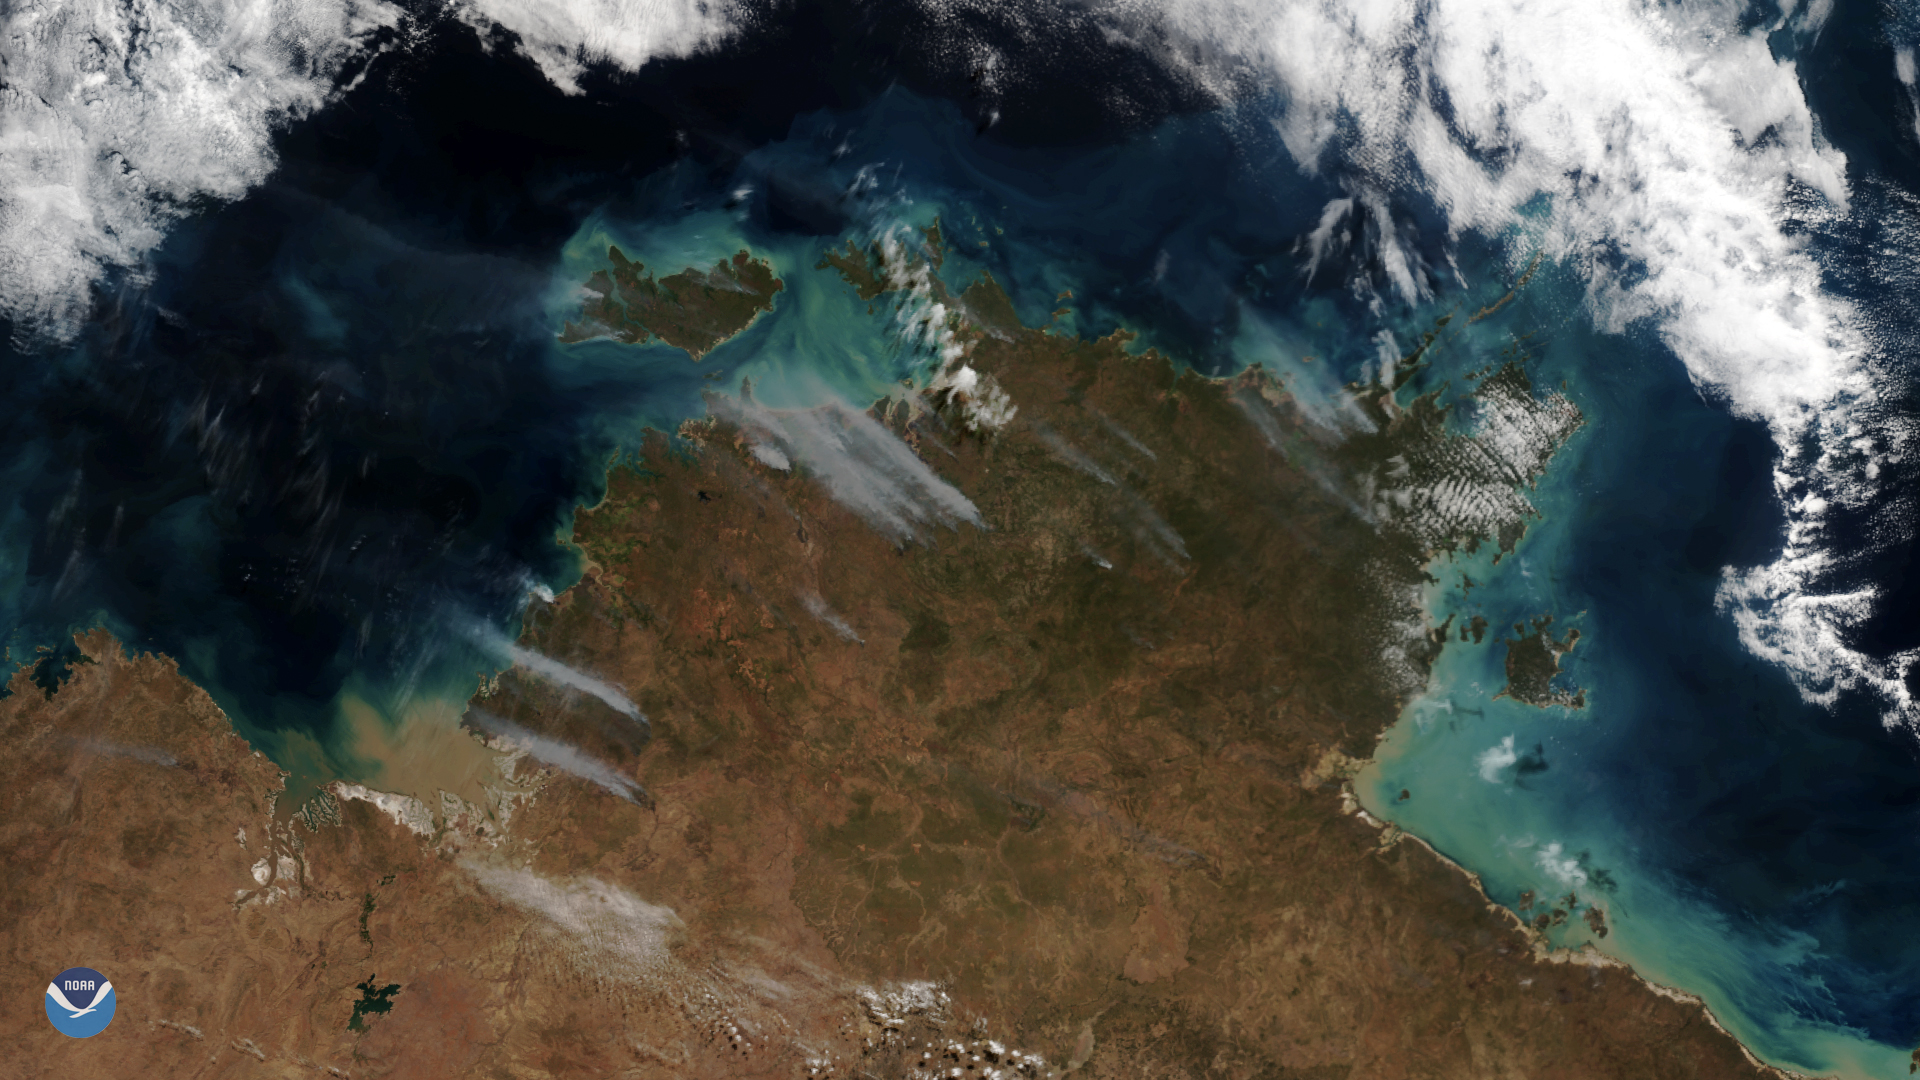 NOAA-20 Sees Plumes of Smoke From Bushfires